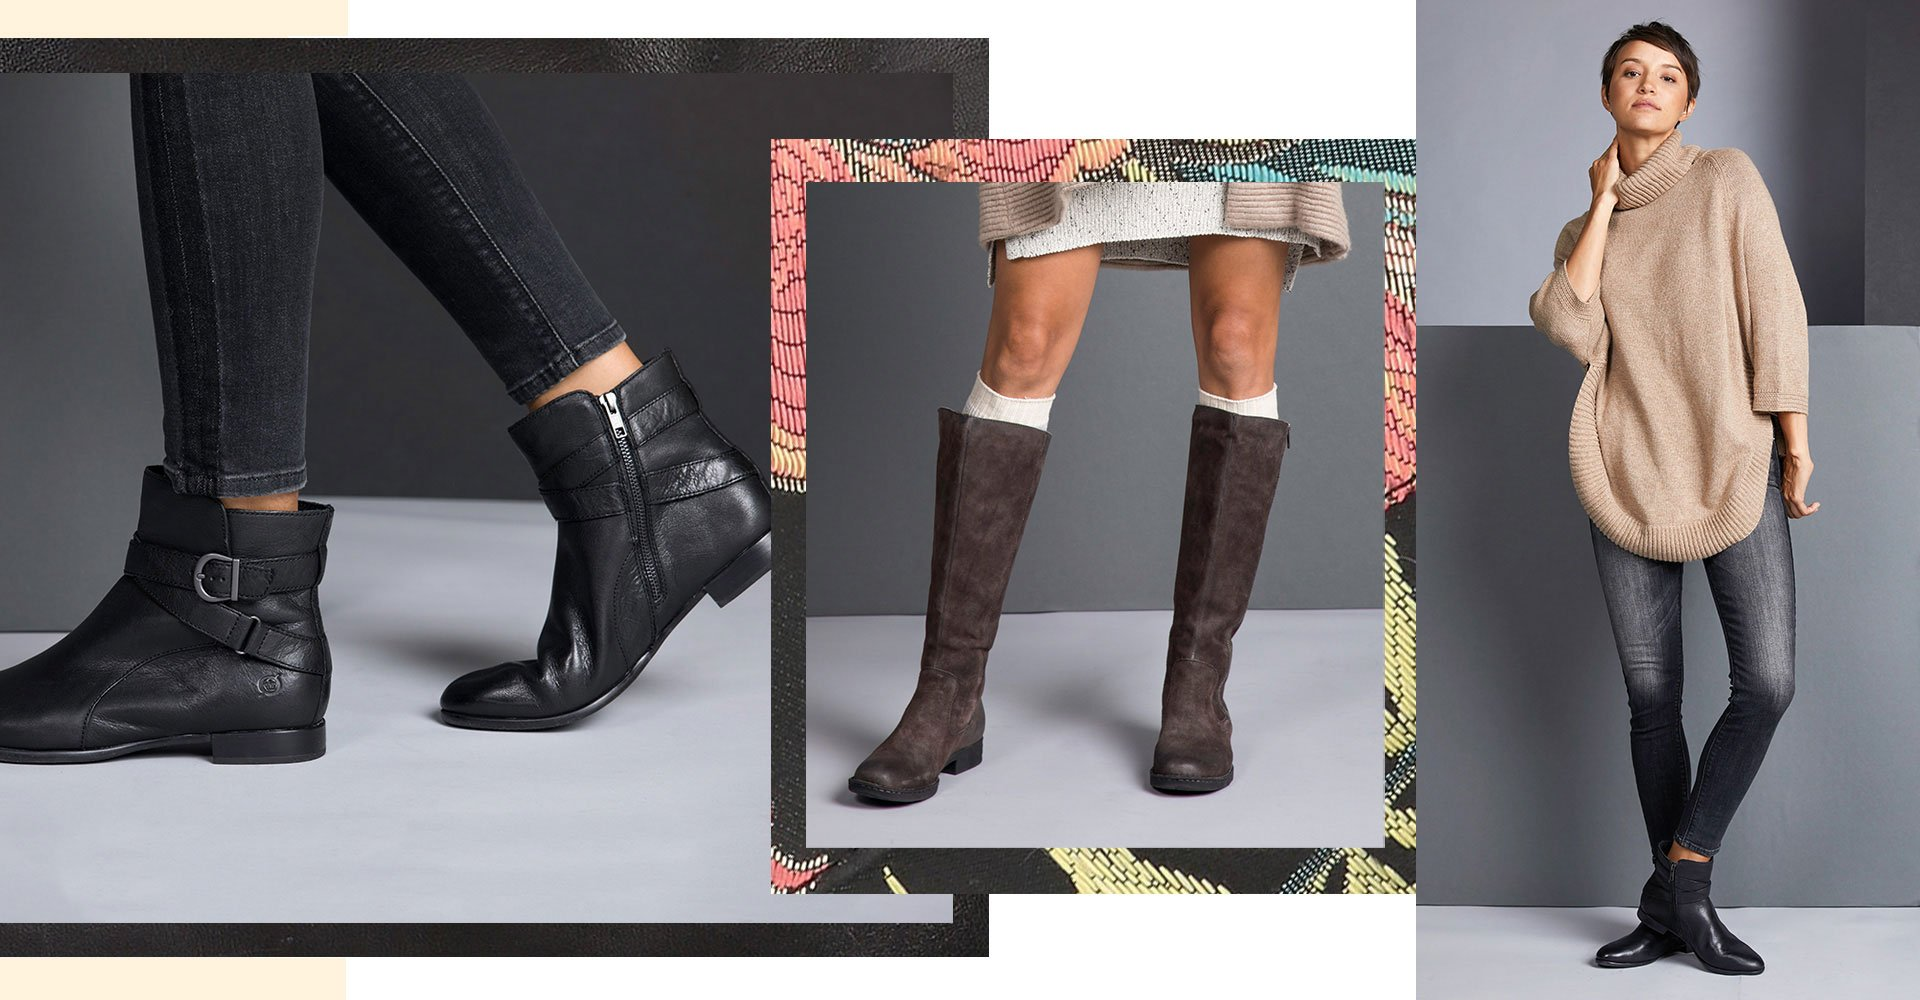 Image linking to comfort boots product results. Features editorial photography of a woman modeling a riding boot style and an ankle boot.